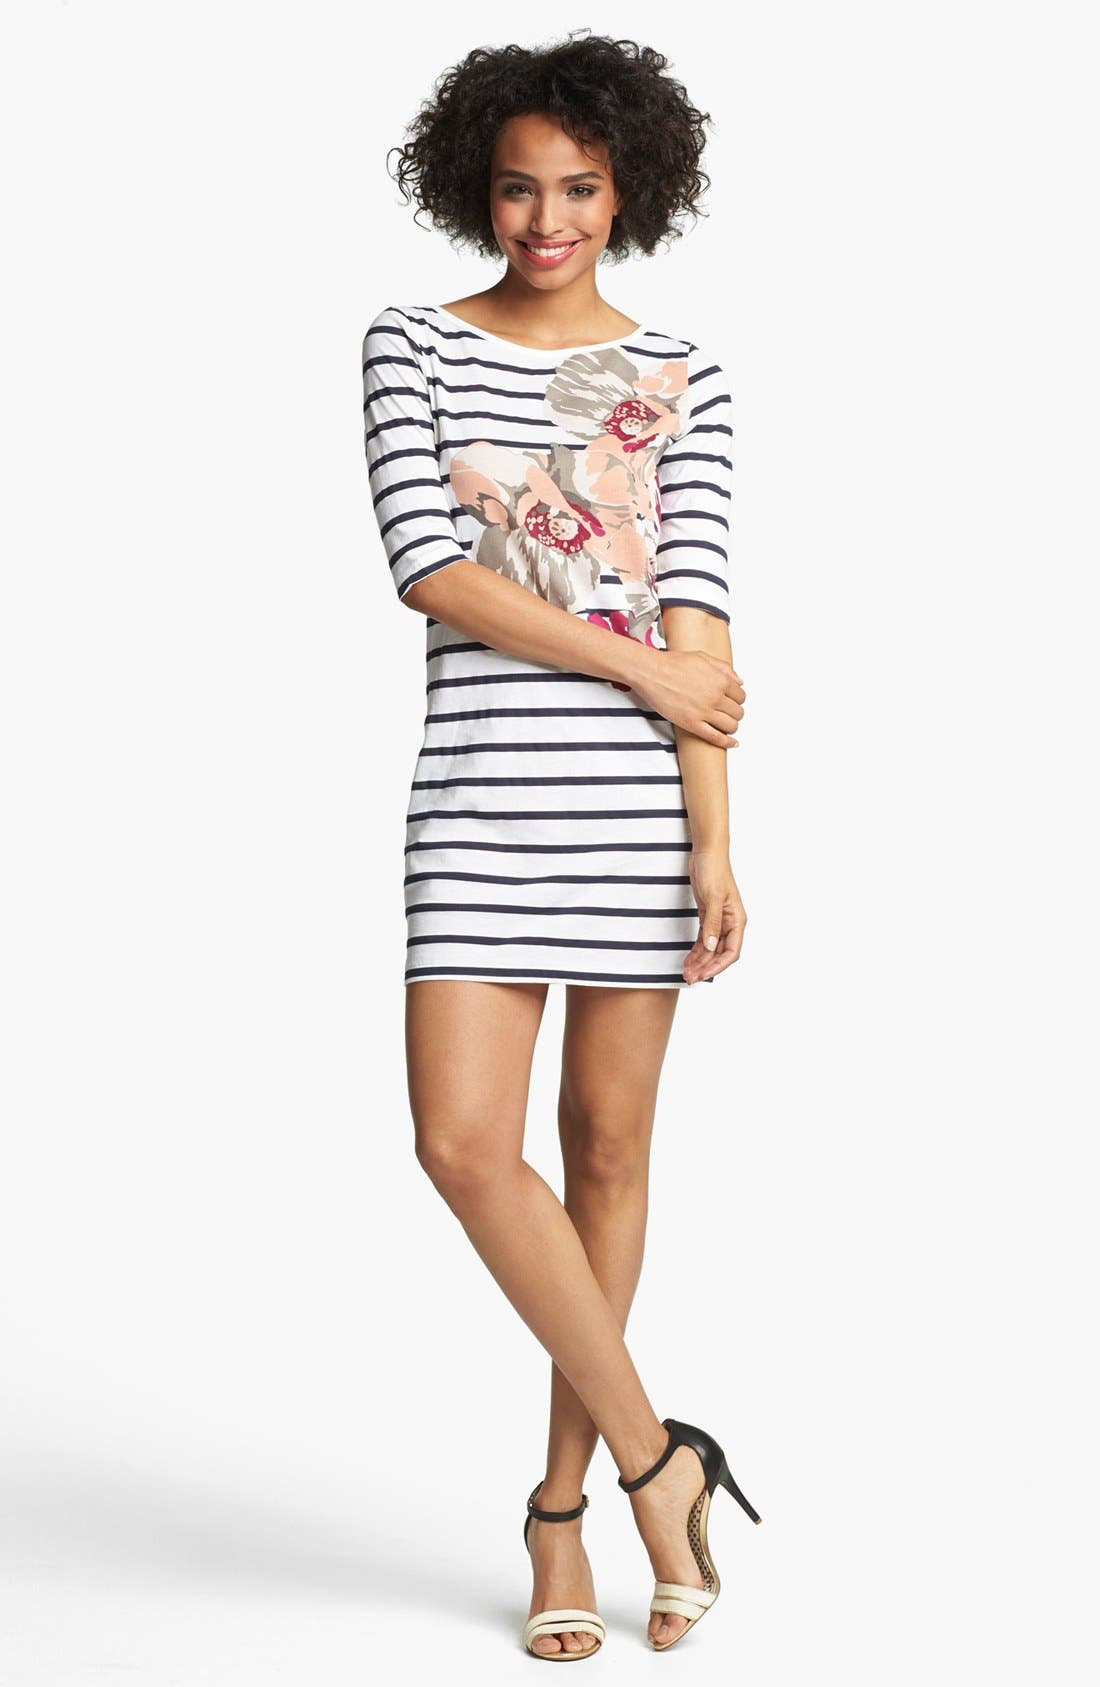 Main Image - French Connection 'Pixie' Graphic Stripe Cotton Dress